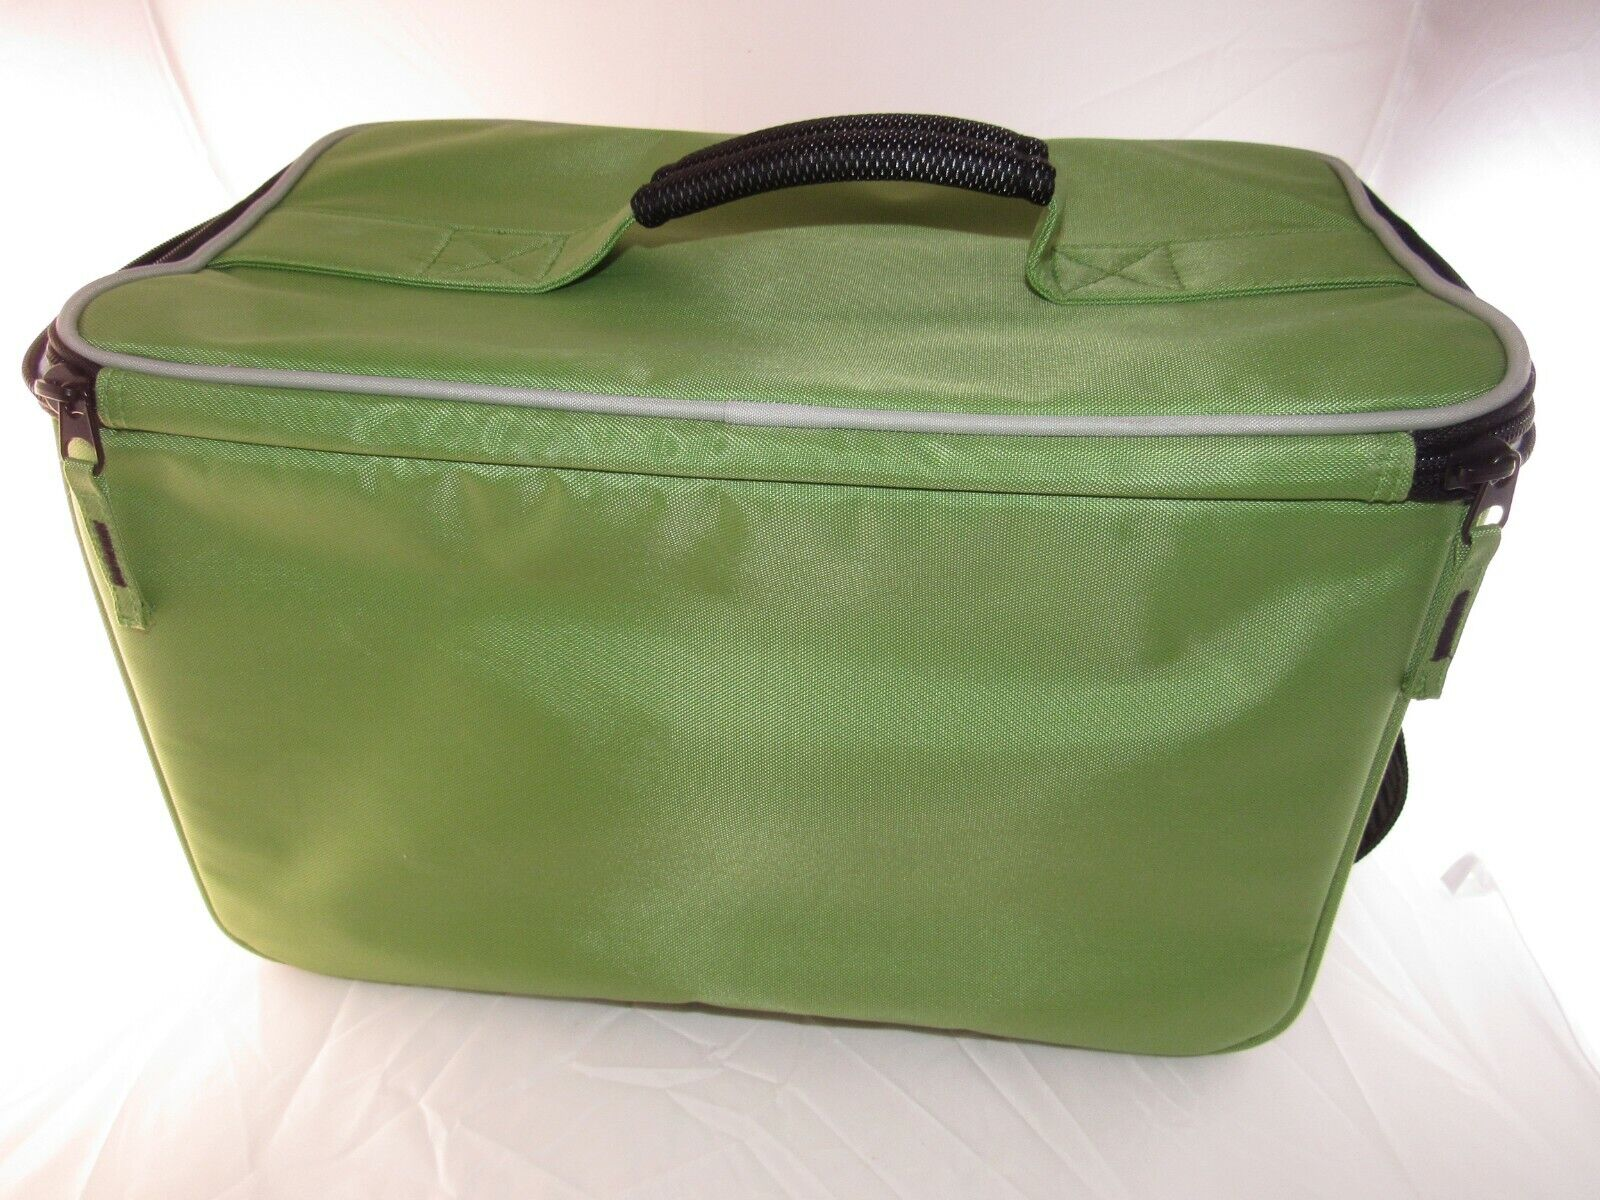 SOREN STITCHED IN STYLE GREEN BOEING TRAVEL BAG - $17.61